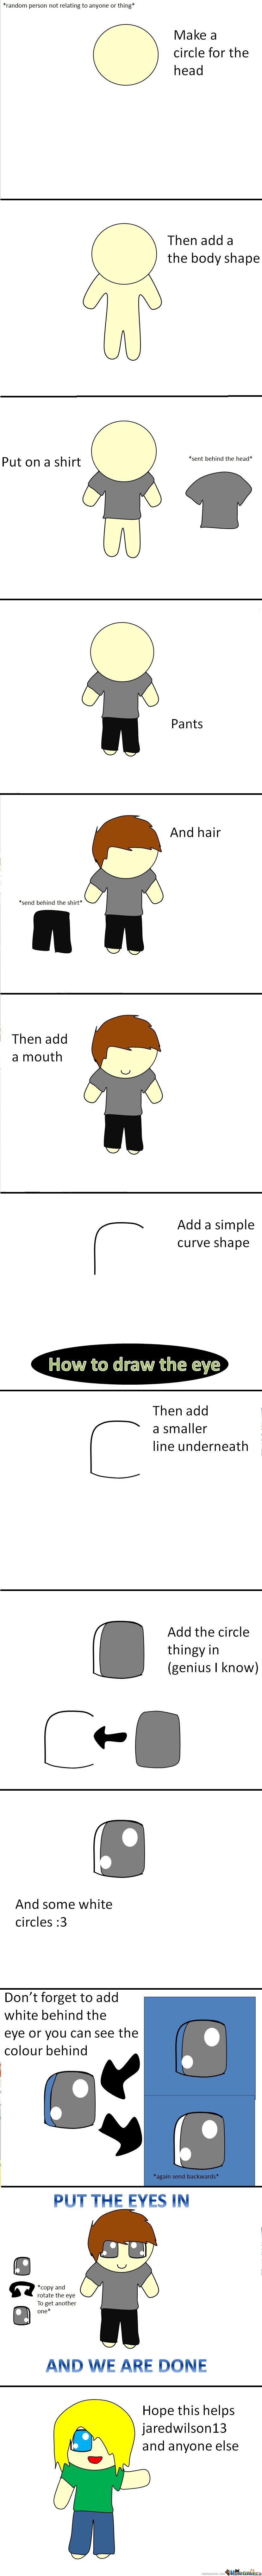 Warning Long Post Ahead About How To Draw (My Style) Skip If Not Intrested